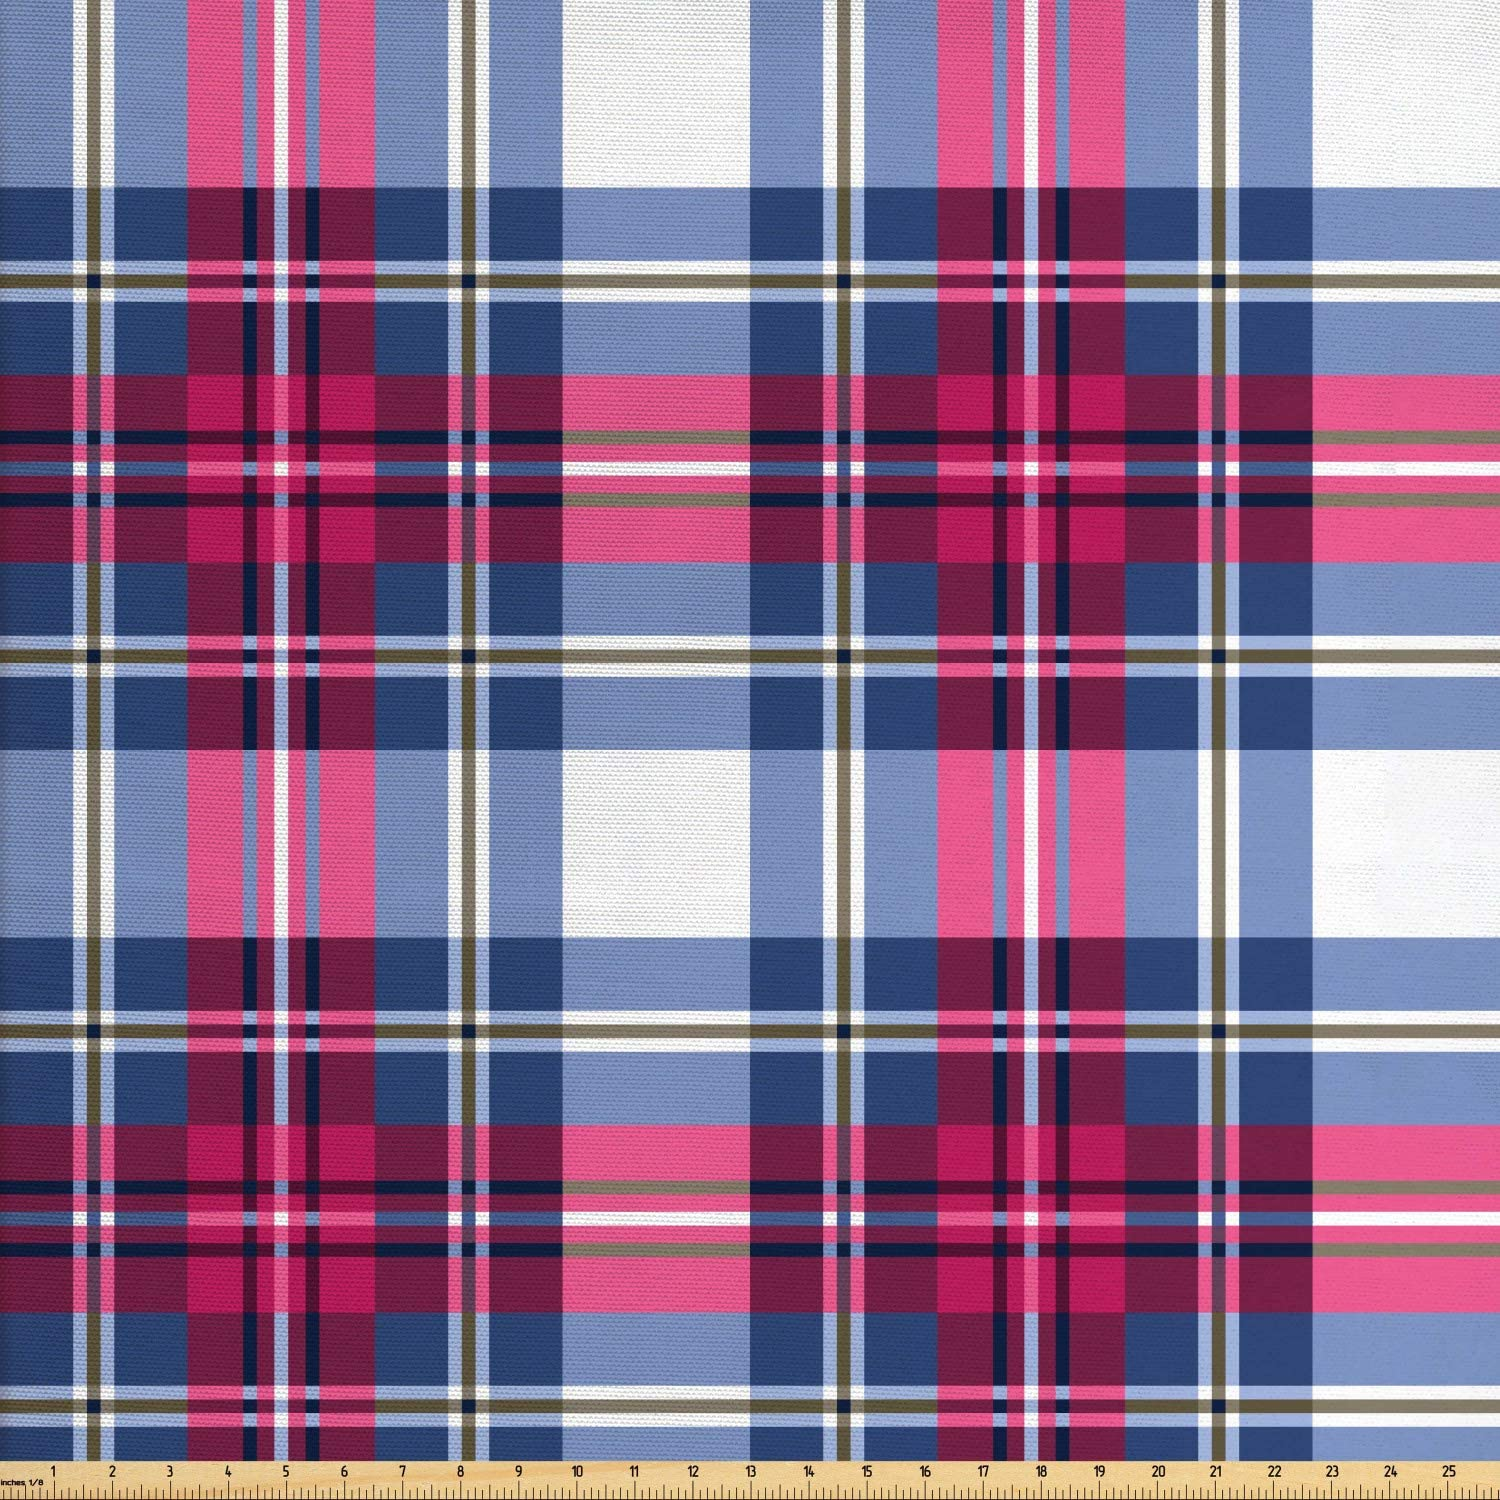 Ambesonne Plaid Fabric by The Yard, Classical British Tartan Design with a Modern Look Pink and Blue Tile Pattern, Decorative Fabric for Upholstery and Home Accents, 2 Yards, Grey Pink